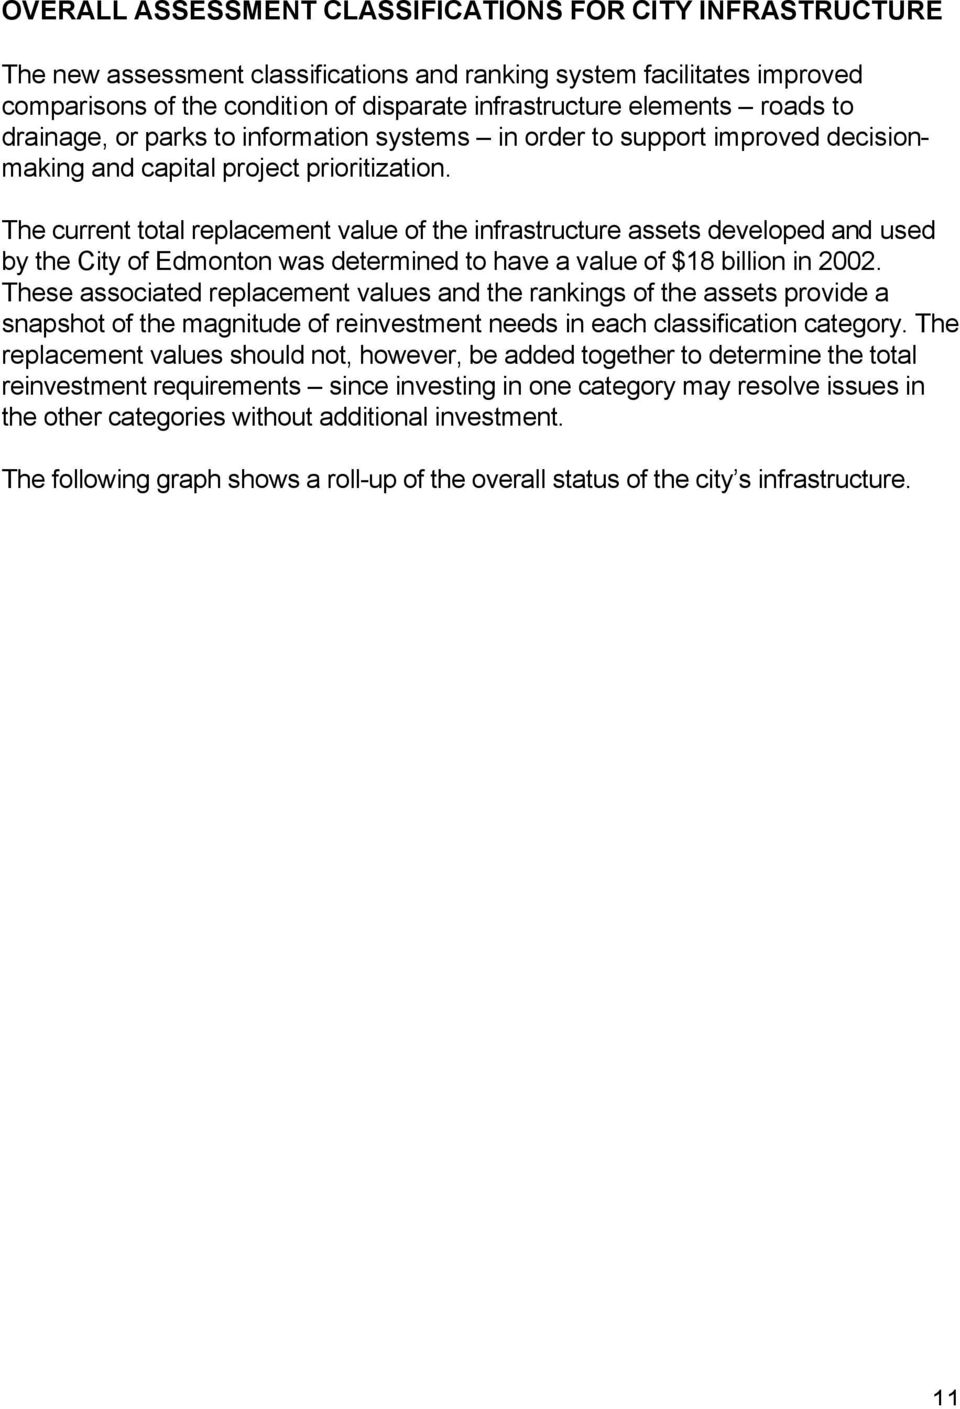 The current total replacement value of the infrastructure assets developed and used by the City of Edmonton was determined to have a value of $18 billion in 2002.